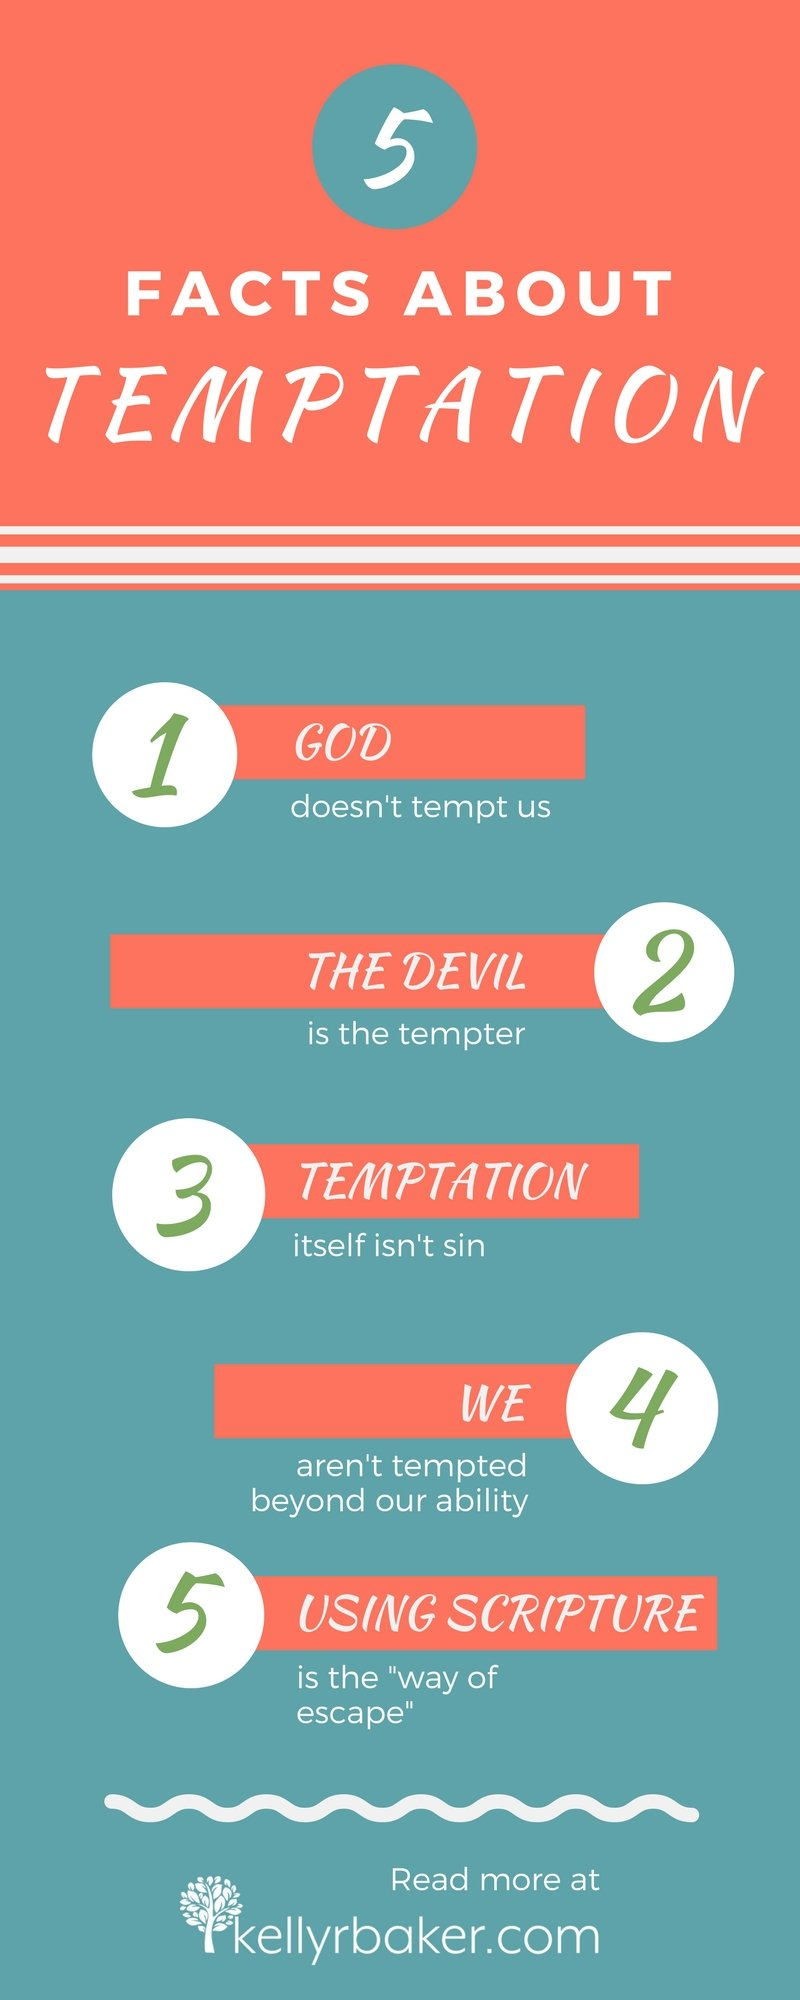 5 Facts about temptation based on biblical truth. Read more at https://kellyrbaker.com #thrive #temptation #wayofescape #spiritualgrowth #biblicaltruths #devil #sin